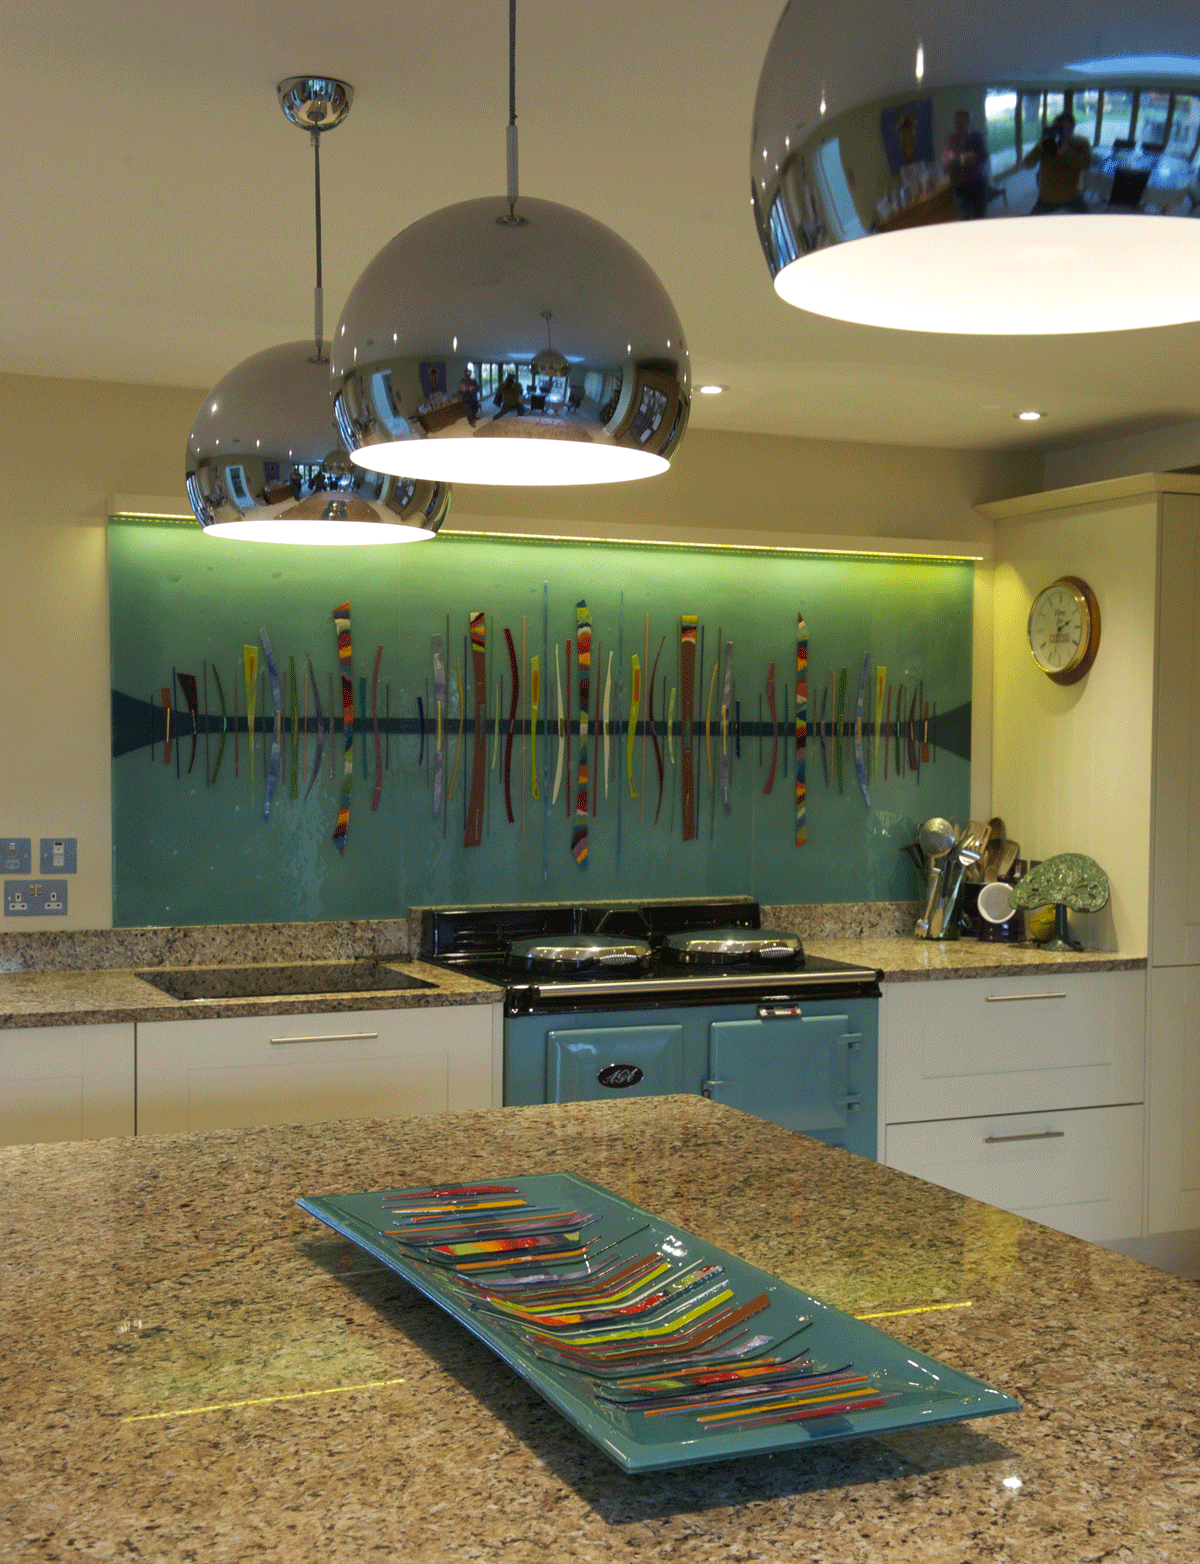 Free Kitchen Design Edinburgh Glass Panels 43 Splashbacks Edinburgh Tile Studio